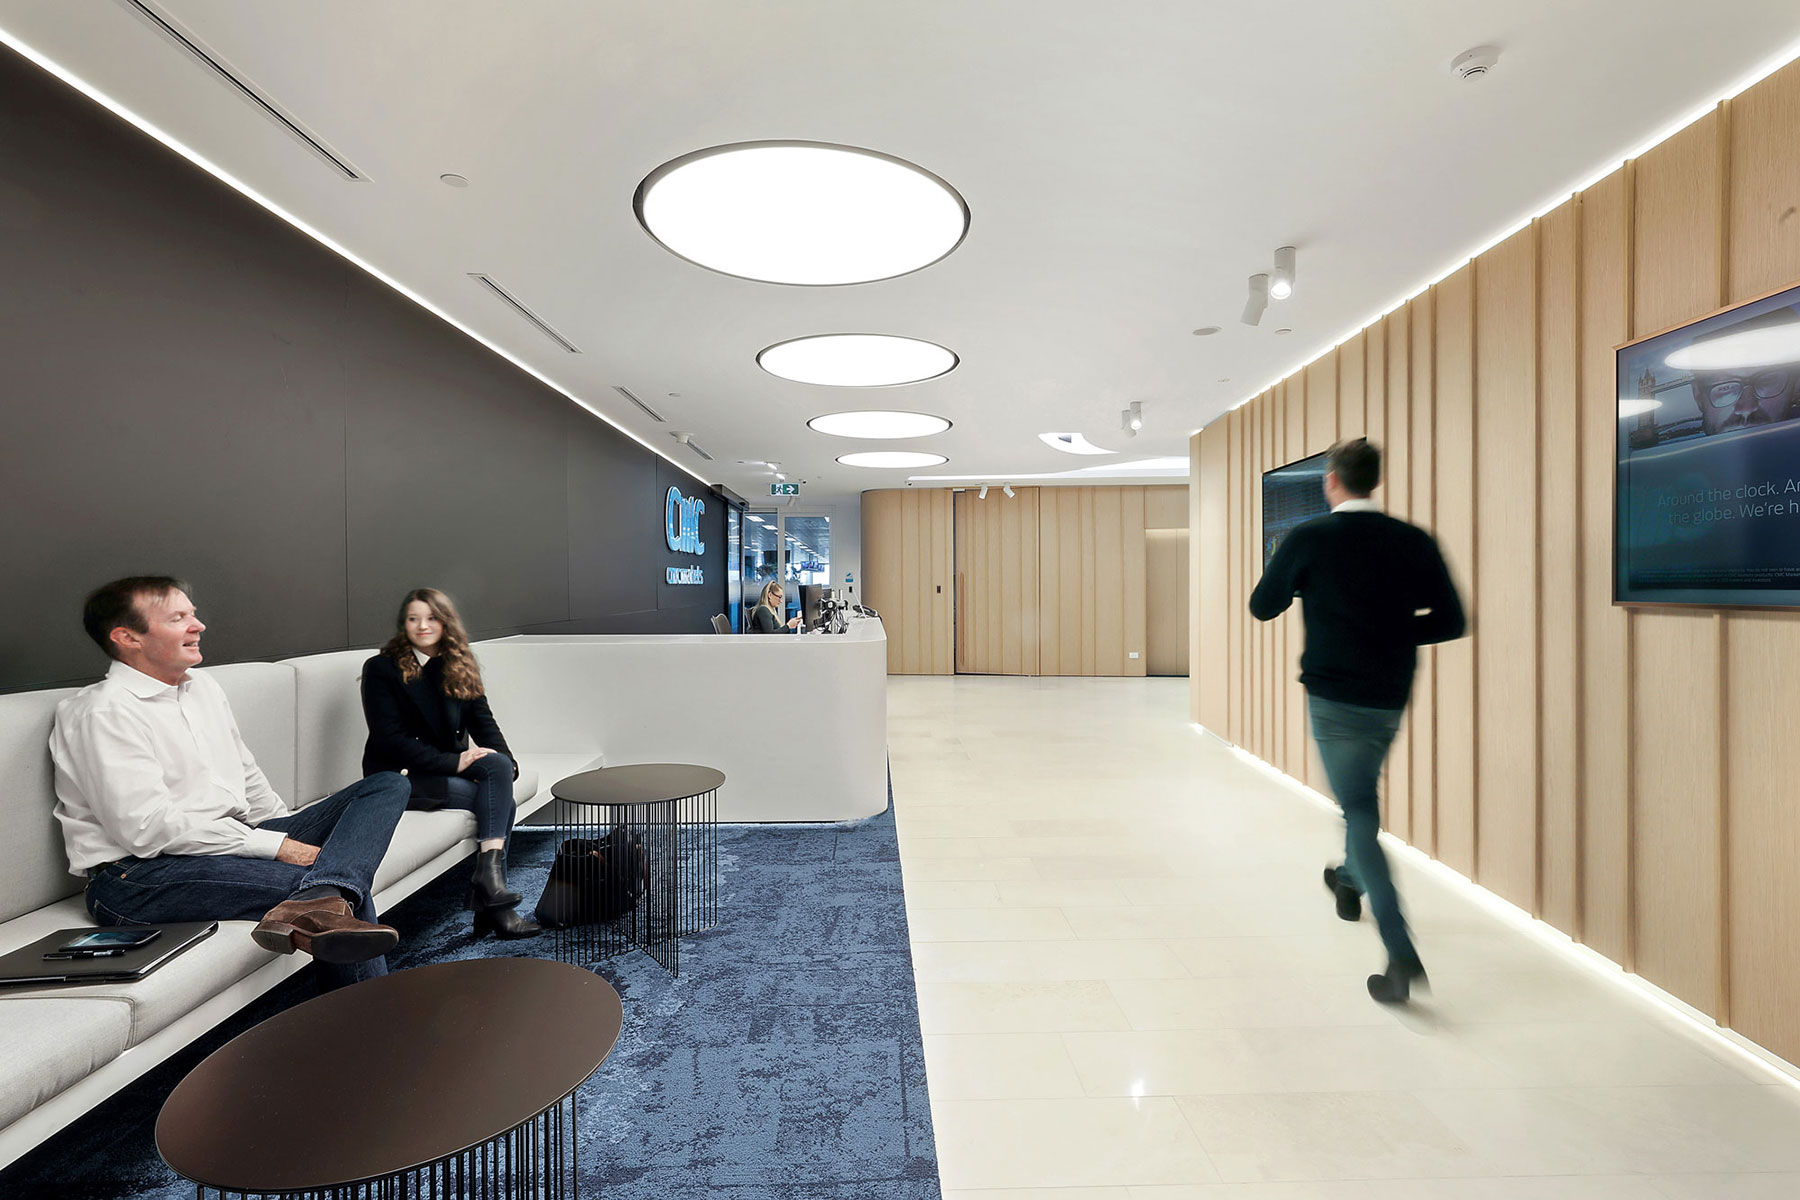 Cmc markets l20 3 international towers barangaroo high reception area 1 thumb